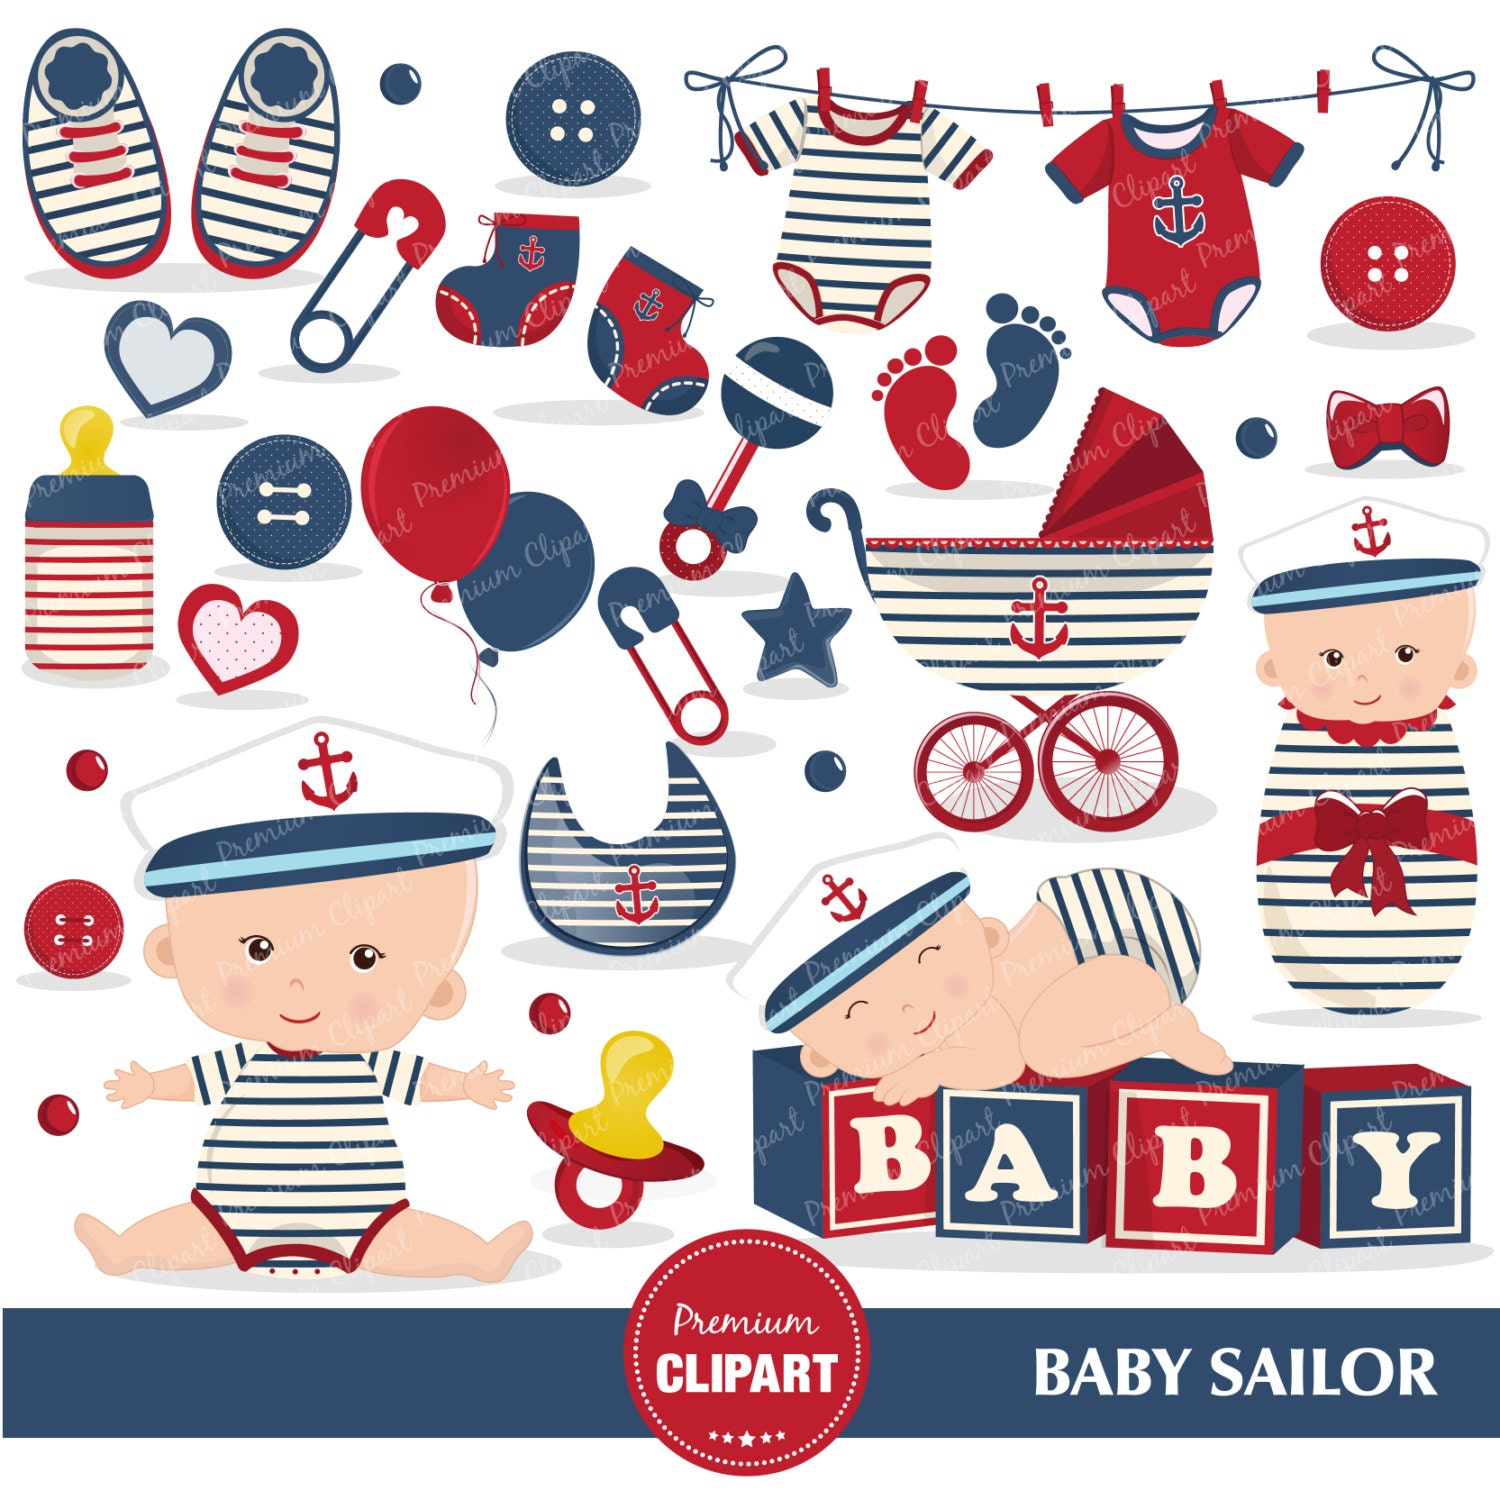 Nautical baby shower clipart Baby sailor Sailing clipart